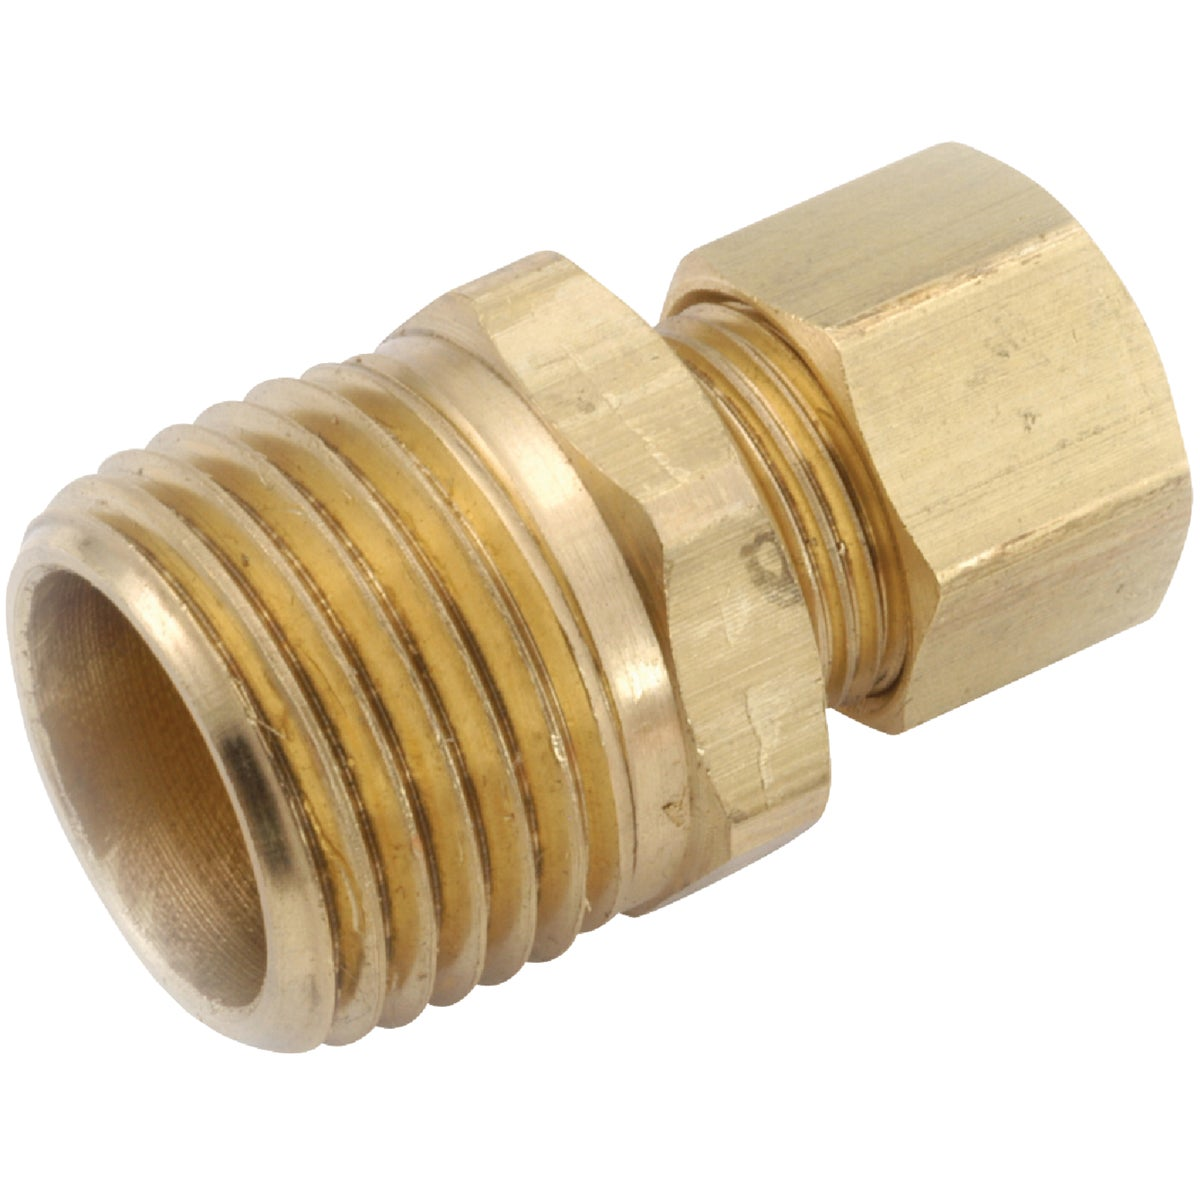 5/16X1/8 MALE CONNECTOR - 750068-0502 by Anderson Metals Corp